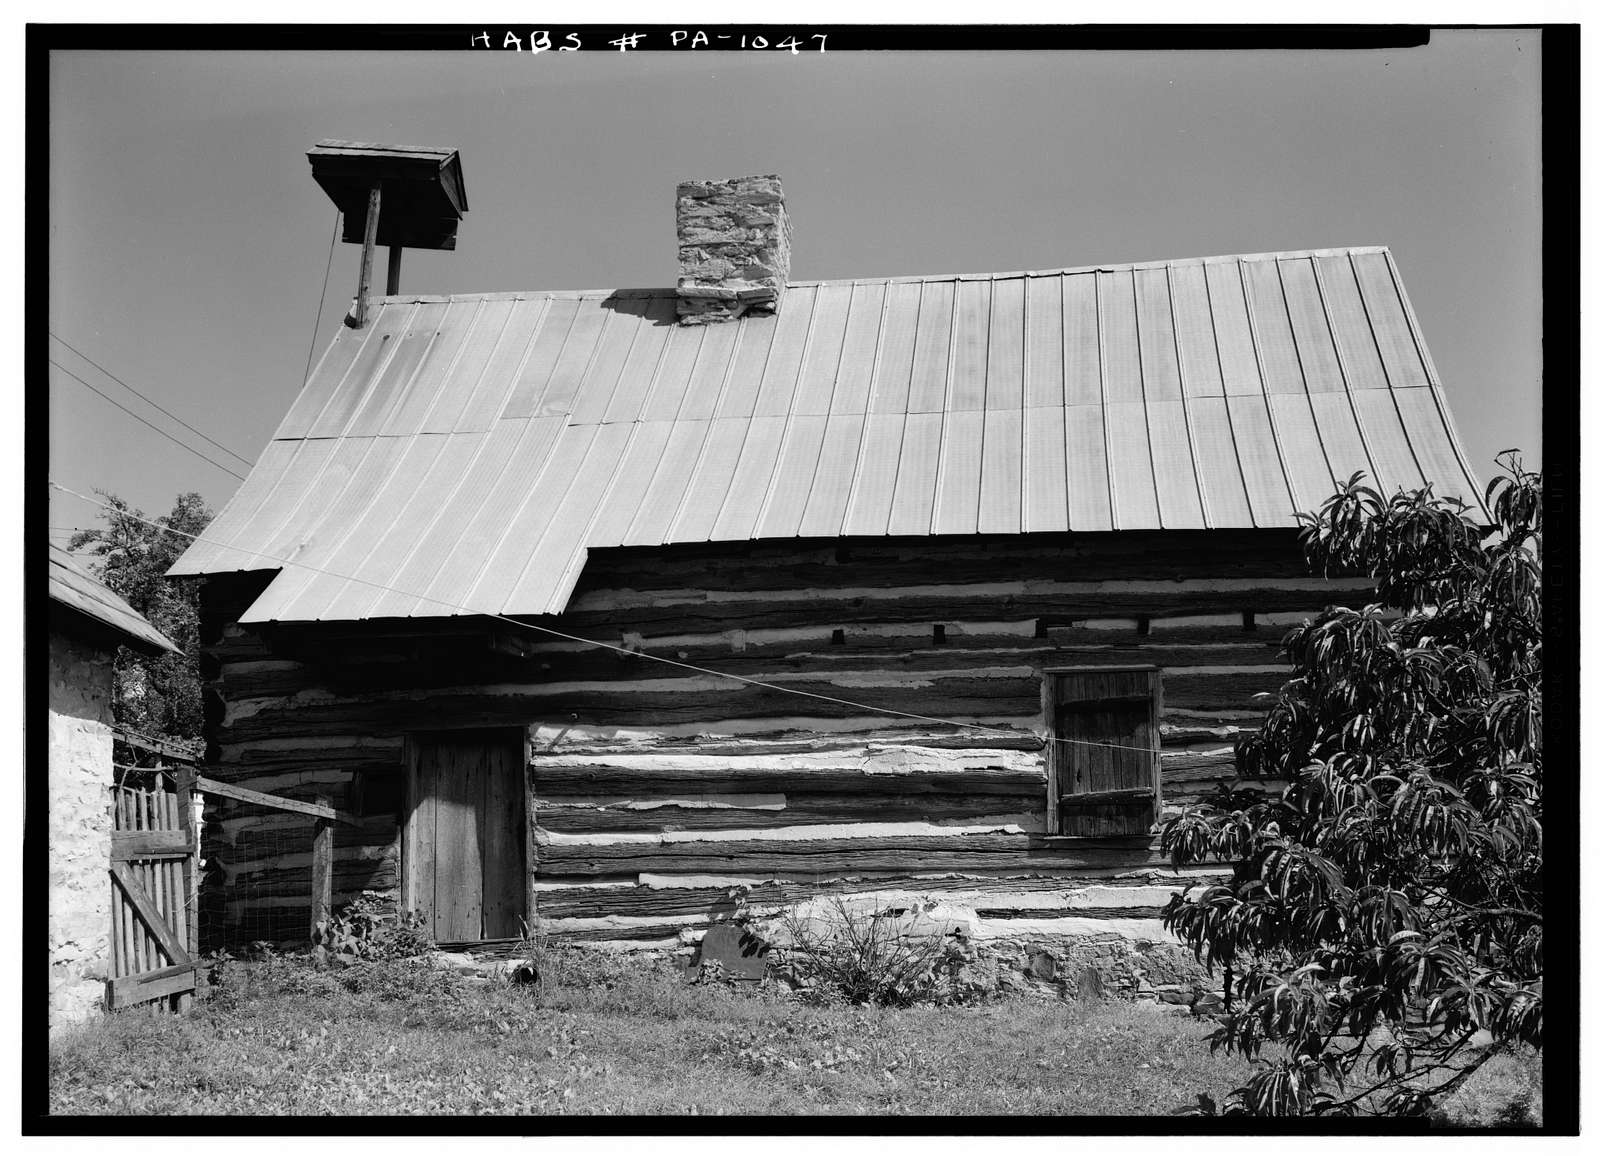 Bertolet-Herbein Cabin, Oley Line (Oley Township), Oley Line, Berks County, PA